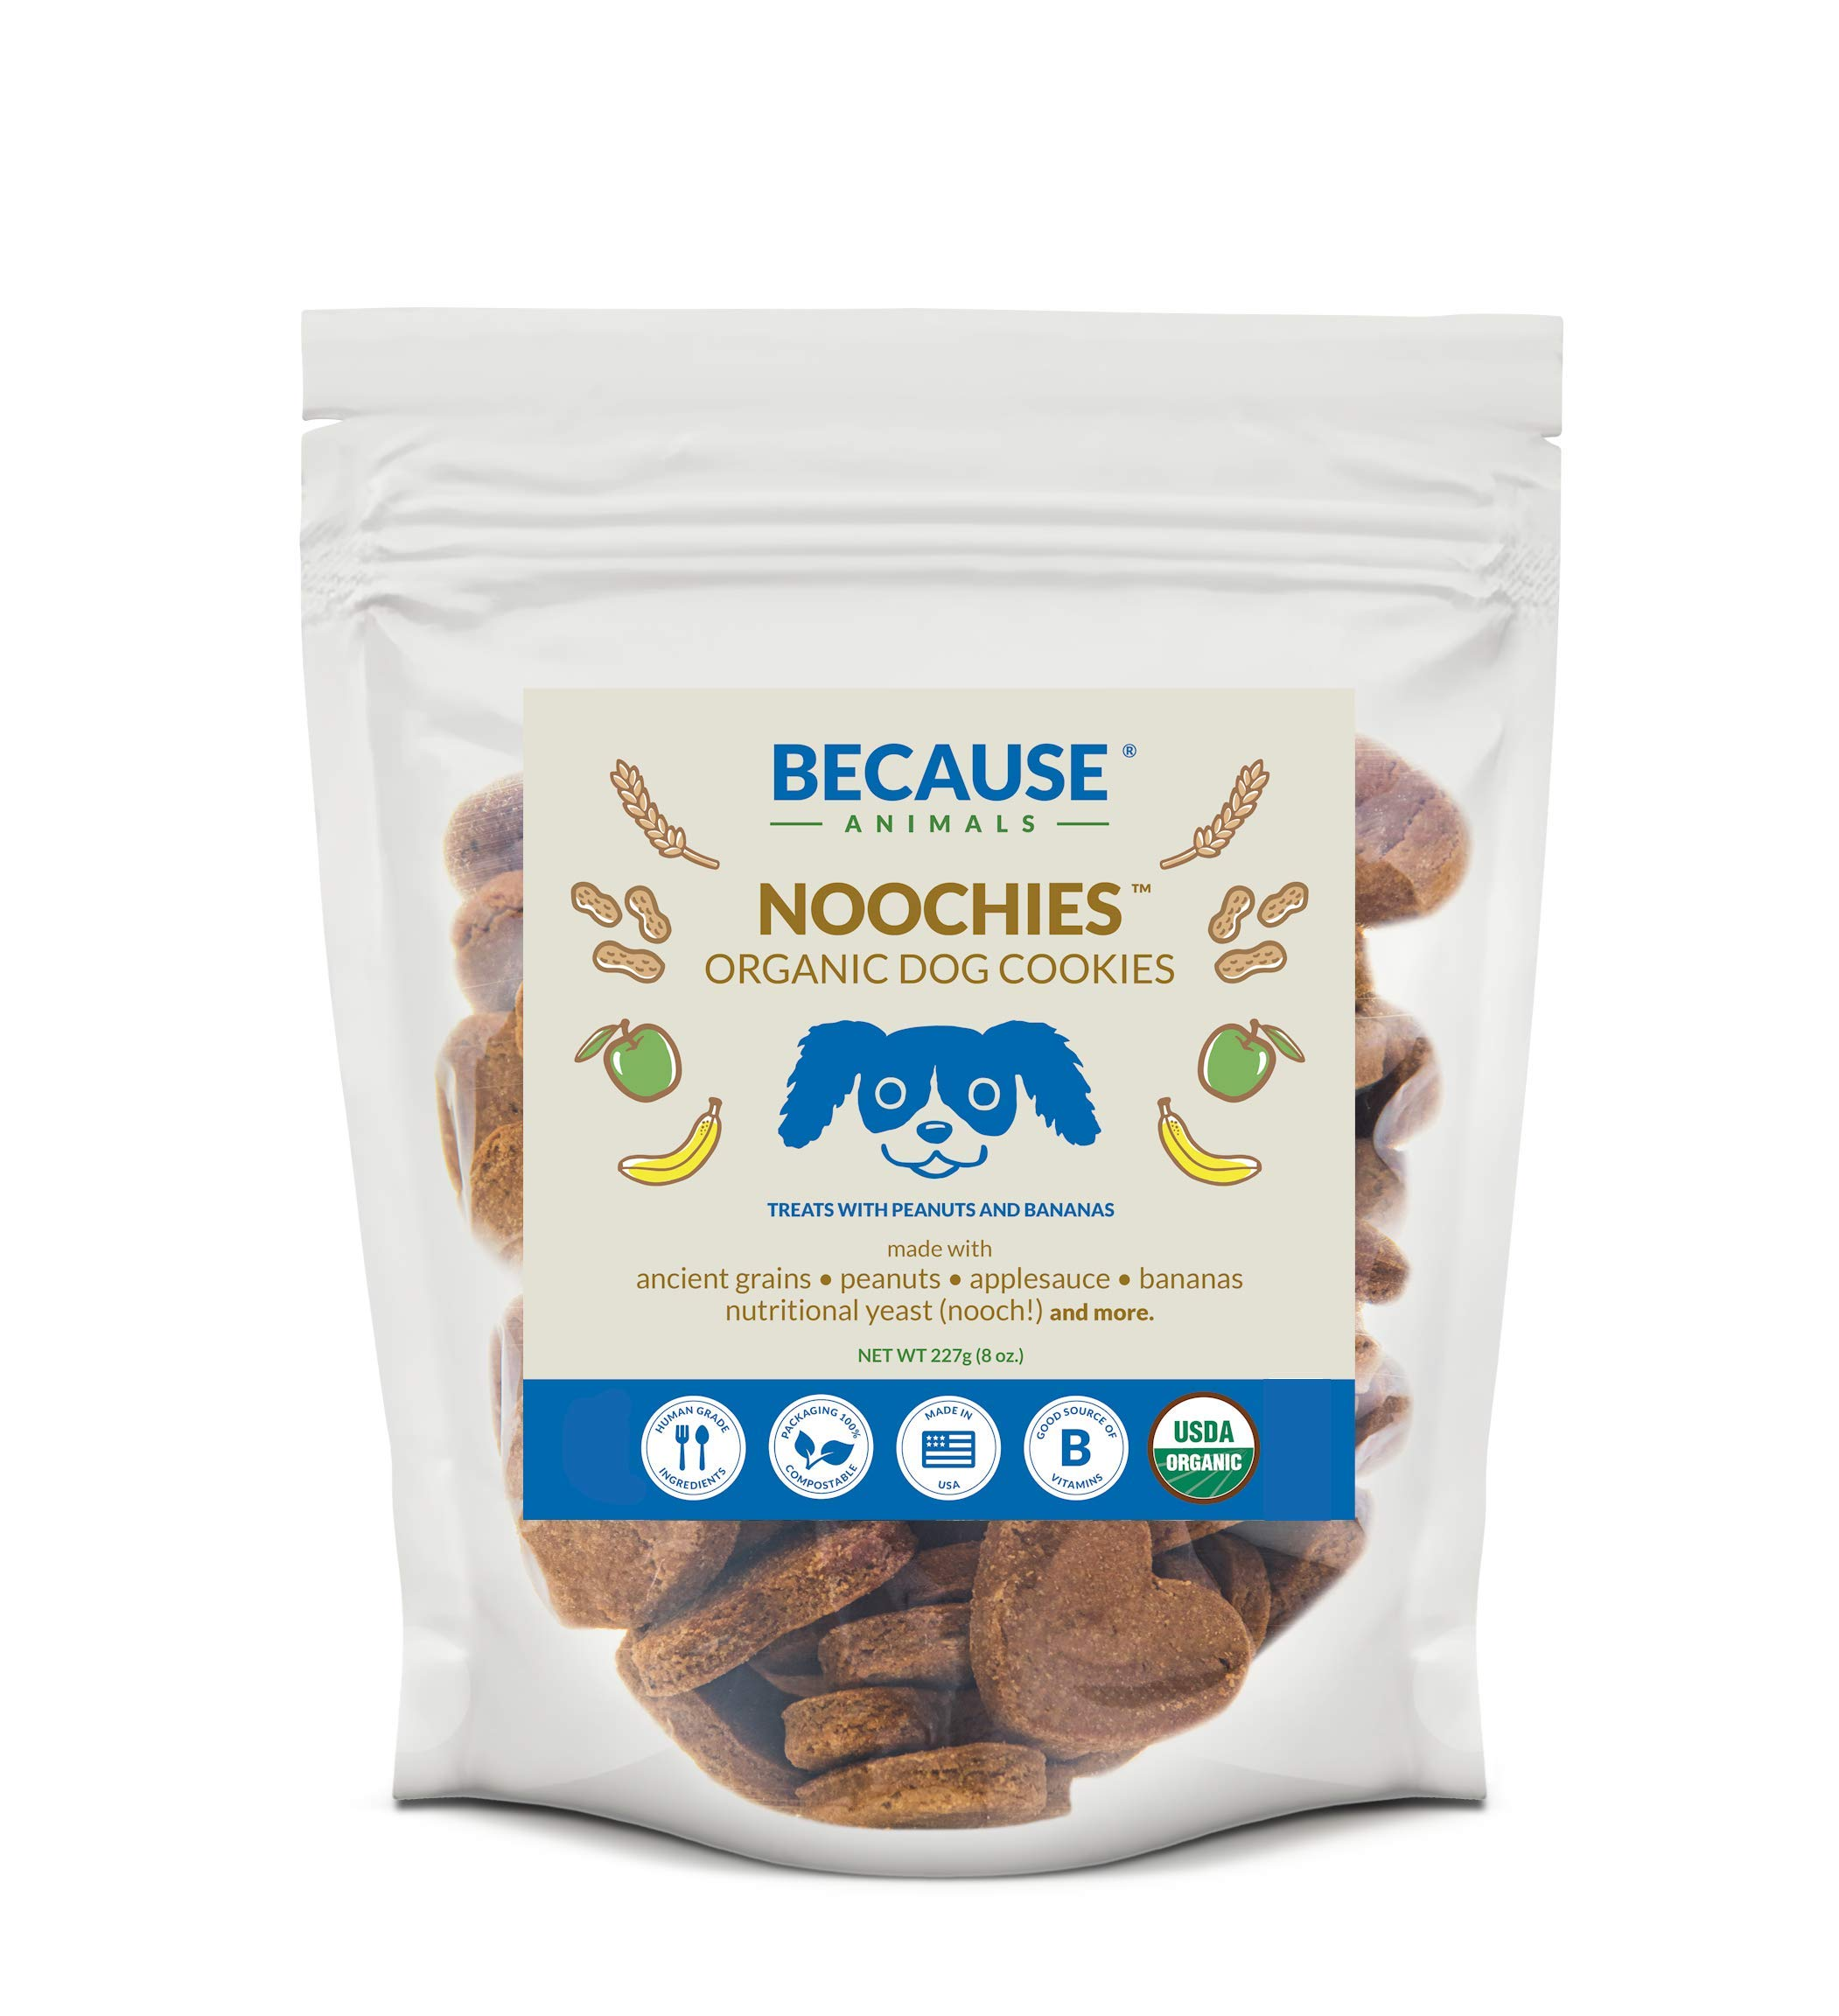 Noochies Organic Dog Cookies - Treats Made From All Natural Healthy Ingredients Are Perfect For Training Small And Large Dogs - Human-grade Biscuits Made From Ancient Grains And Peanut Butter